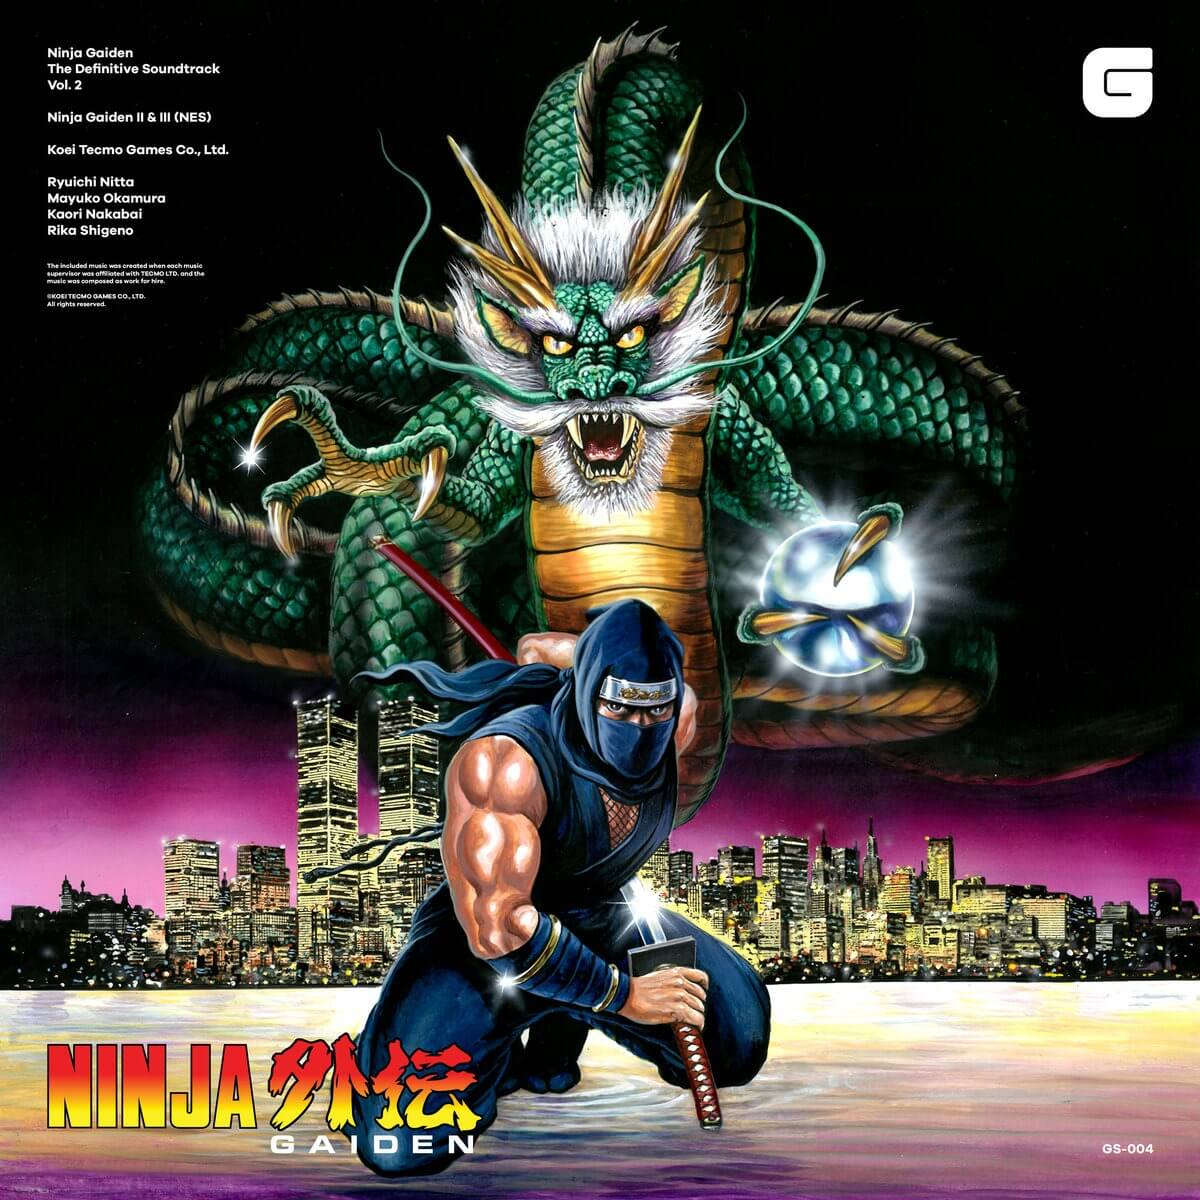 Ninja Gaiden Trilogy Soundtrack 2